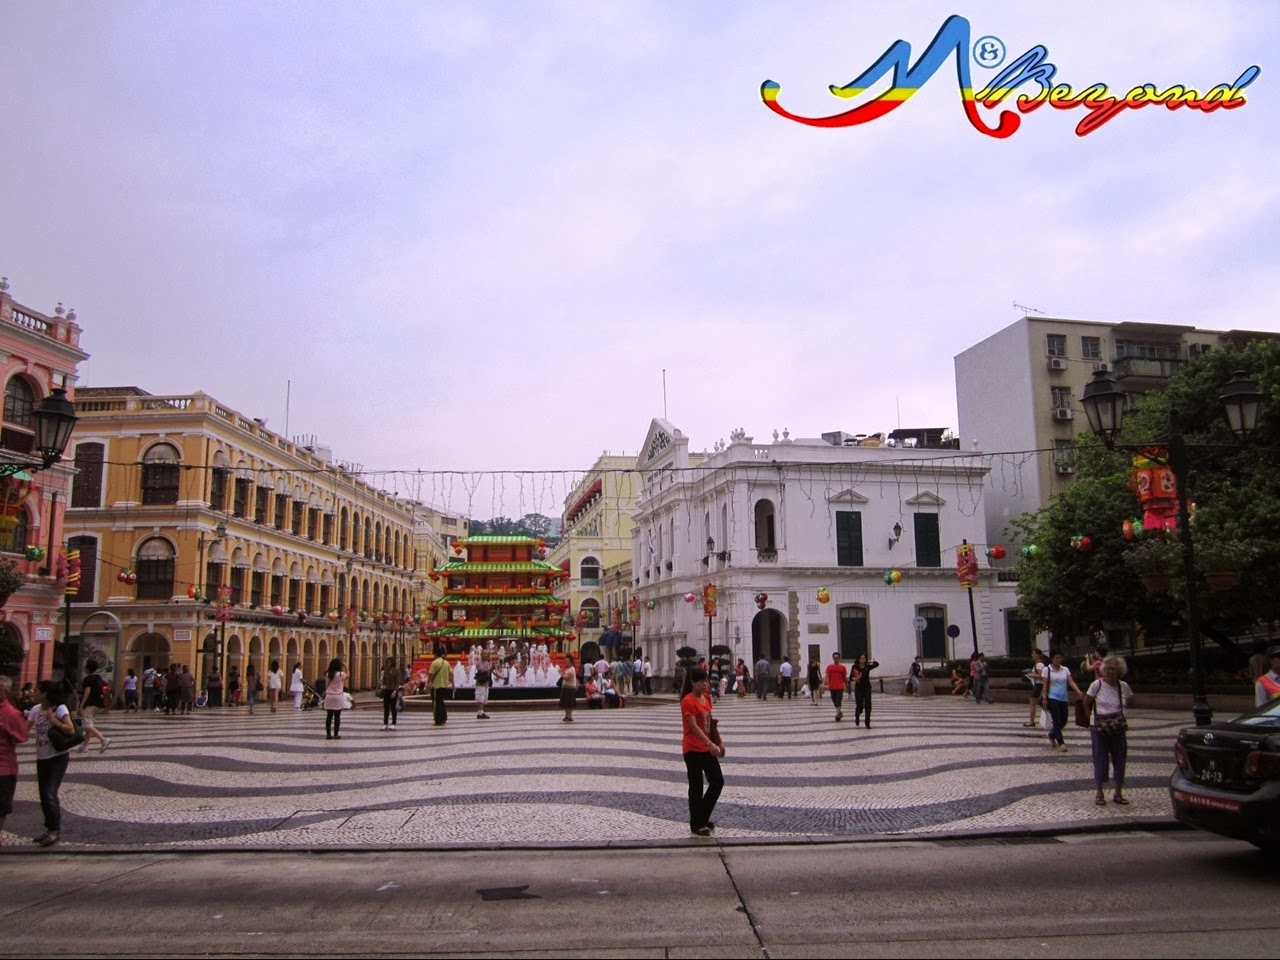 senado square macau, historic centre, macau historic center, macau tourist spots, macau tourist attraction